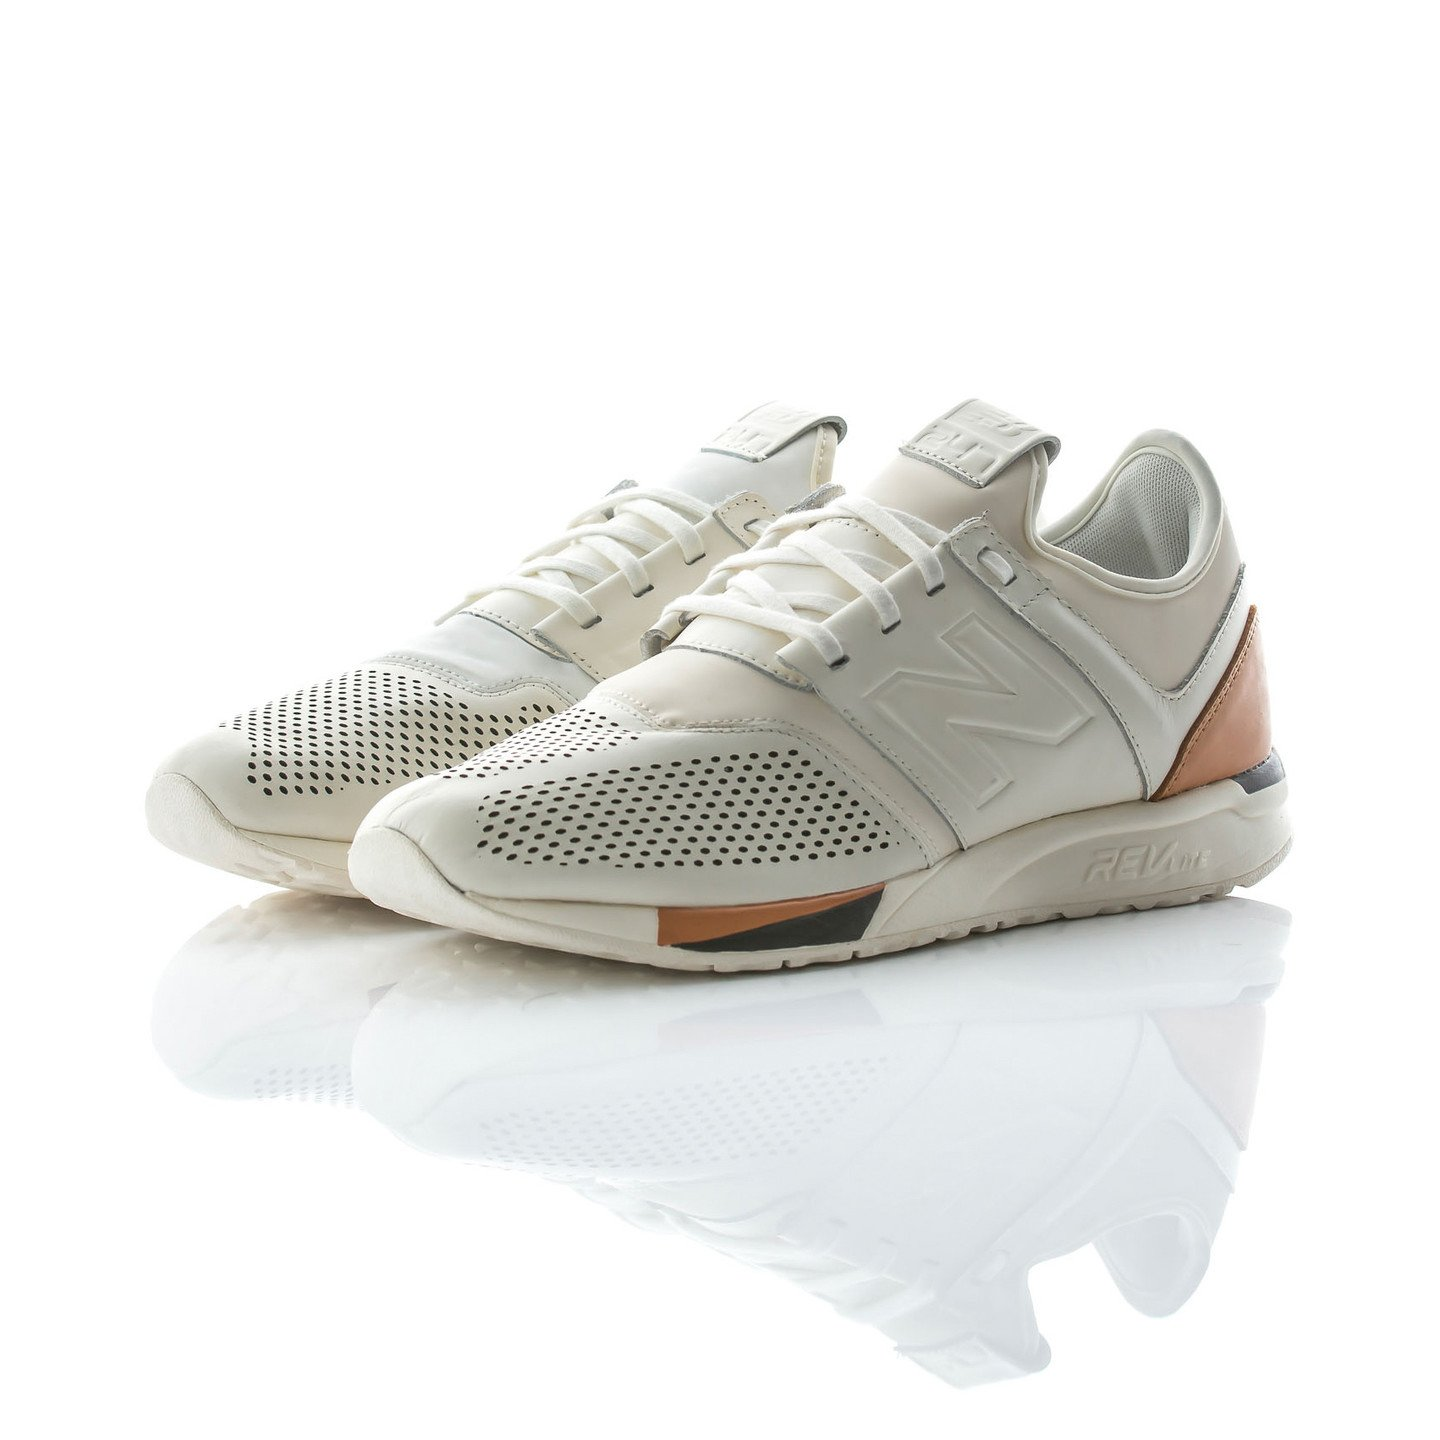 New Balance MRL 247 'Luxe Pack' Off White / Brown MRL247BE-44.5